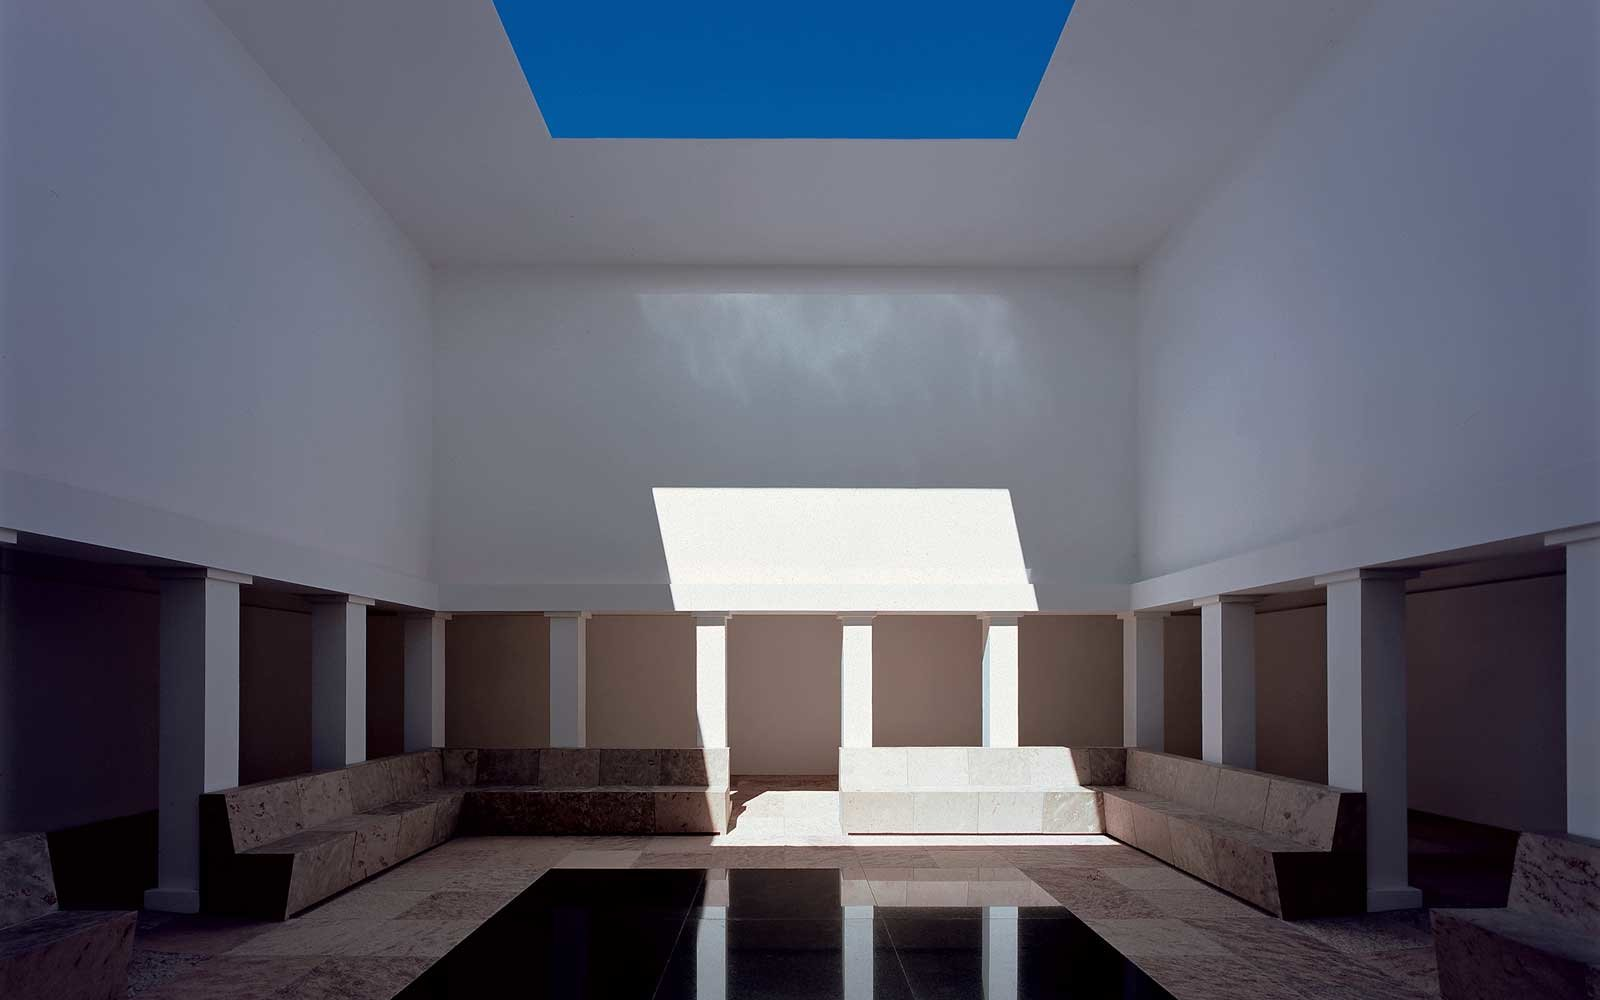 Work by James Turrell at the Hess Estate in Salta, Argentina